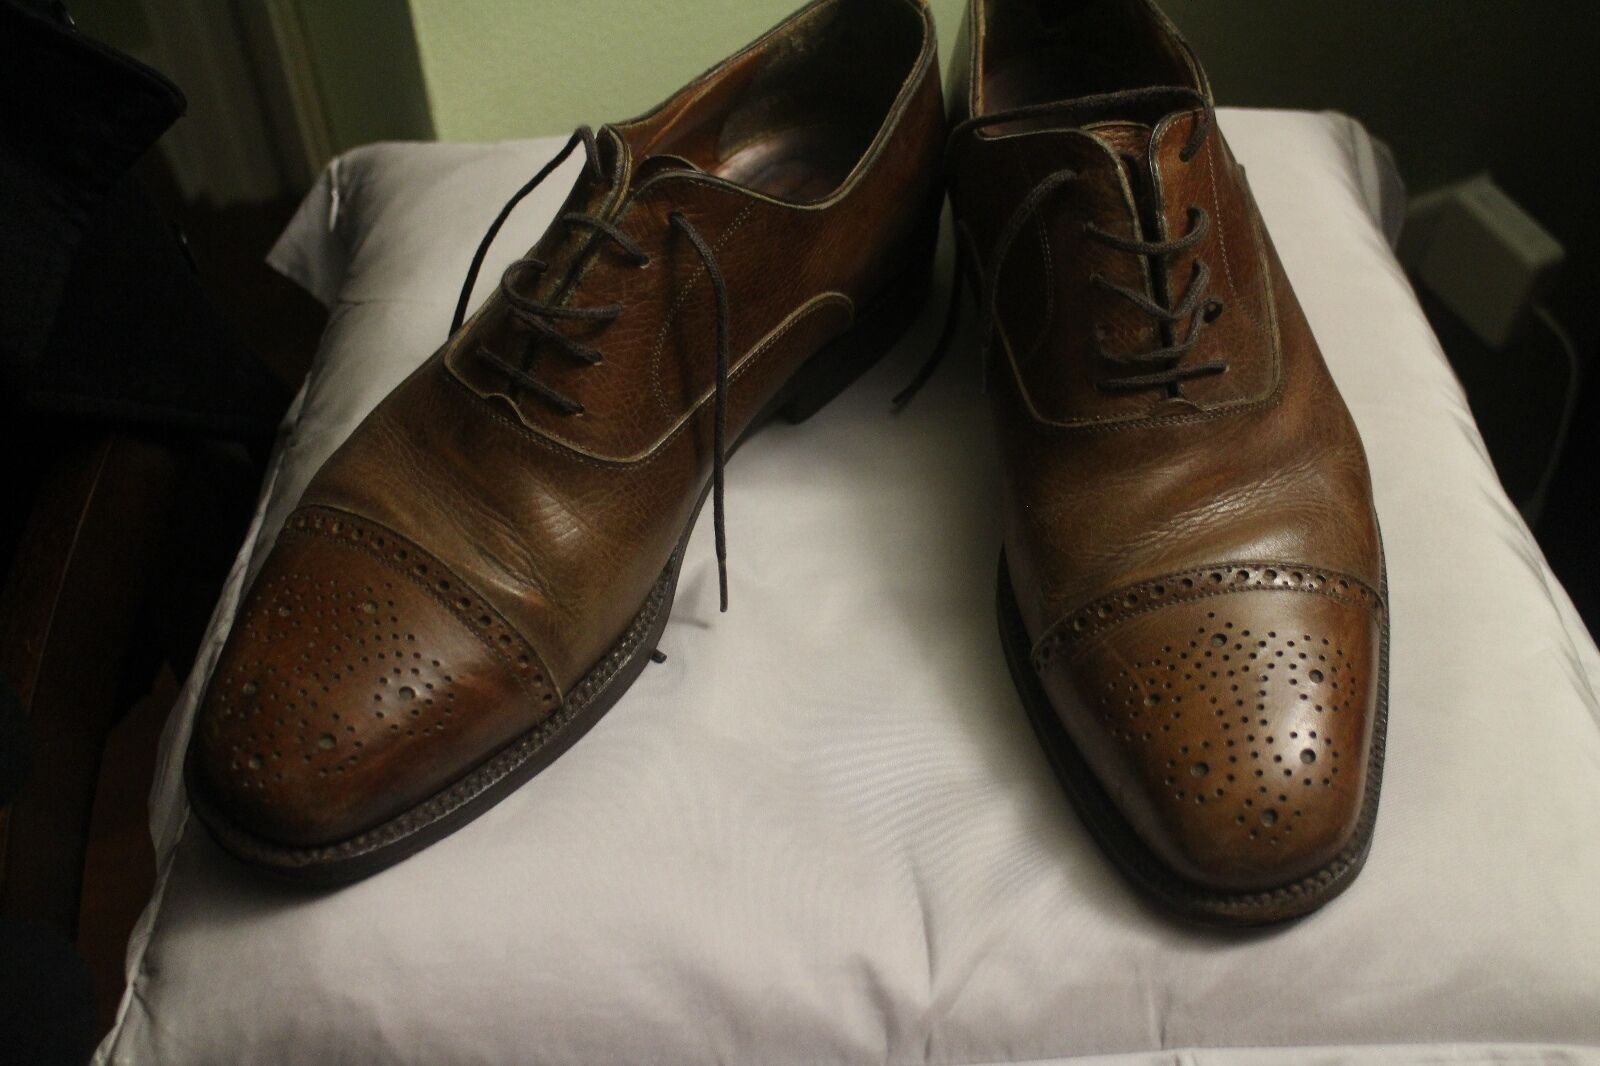 Barneys NY Calf Skin Cap Toe Oxfords 9